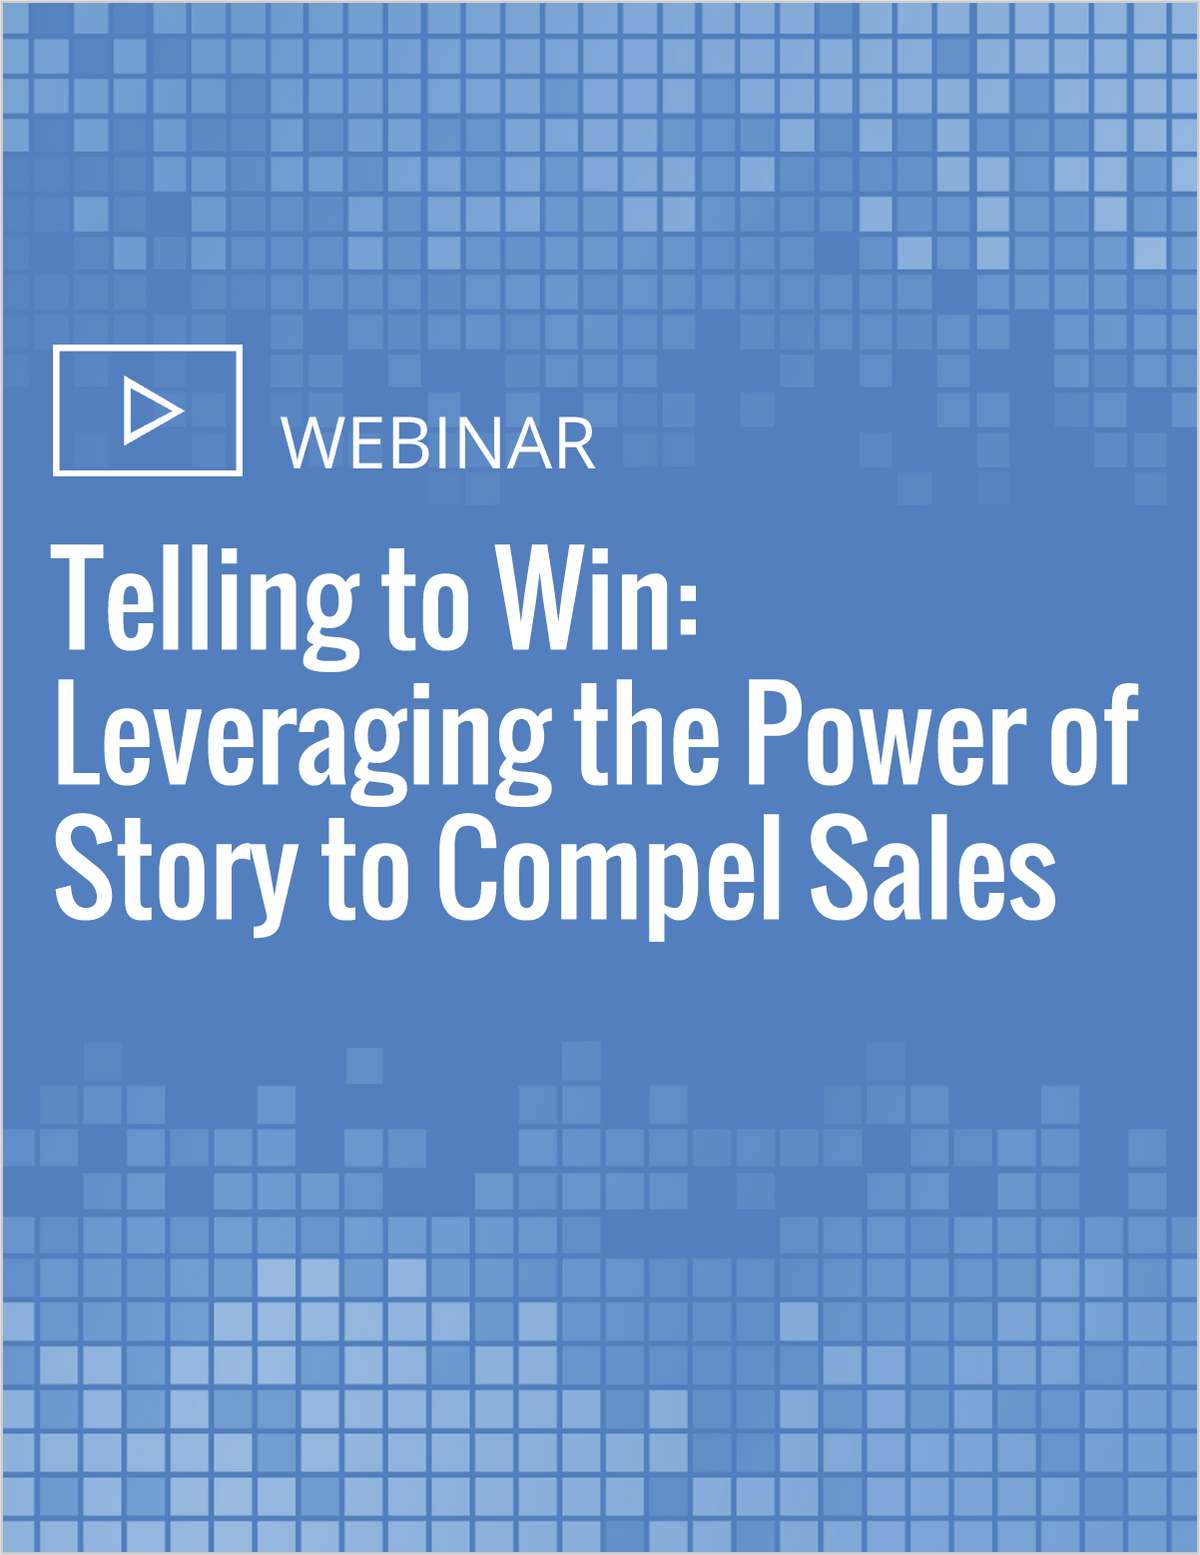 Telling to Win: Leveraging the Power of Story to Compel Sales